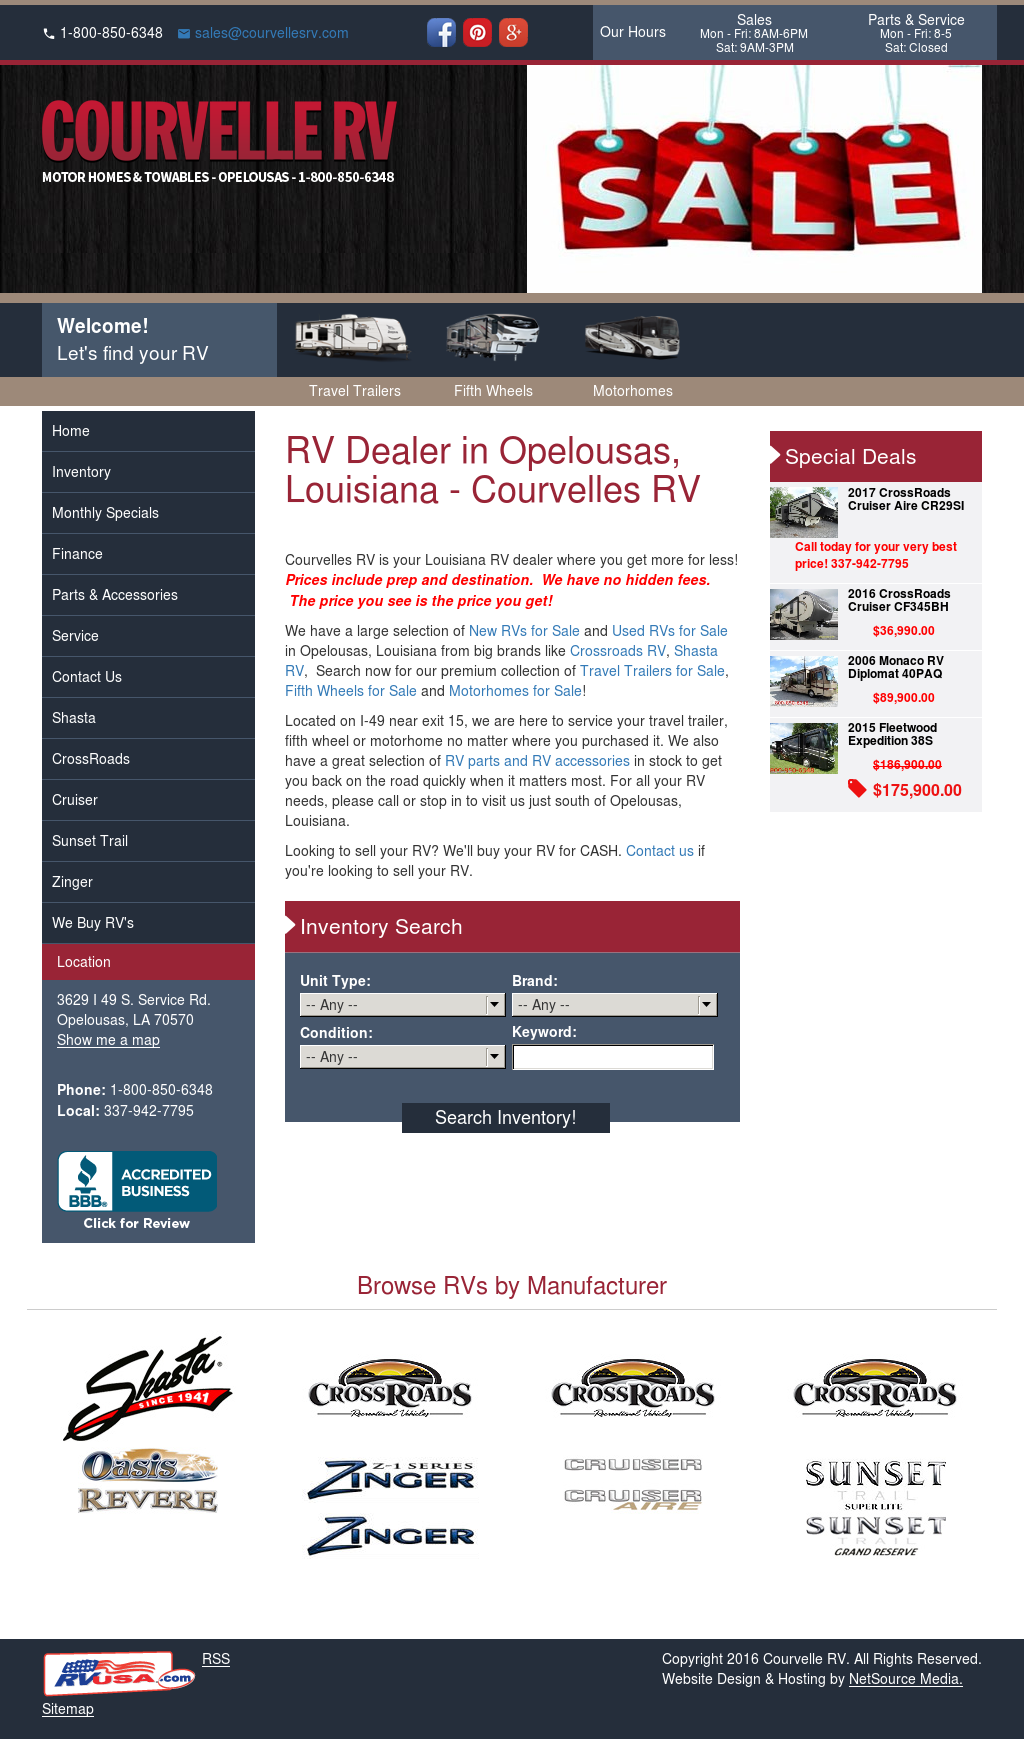 Courvelle Rv Competitors, Revenue and Employees - Owler